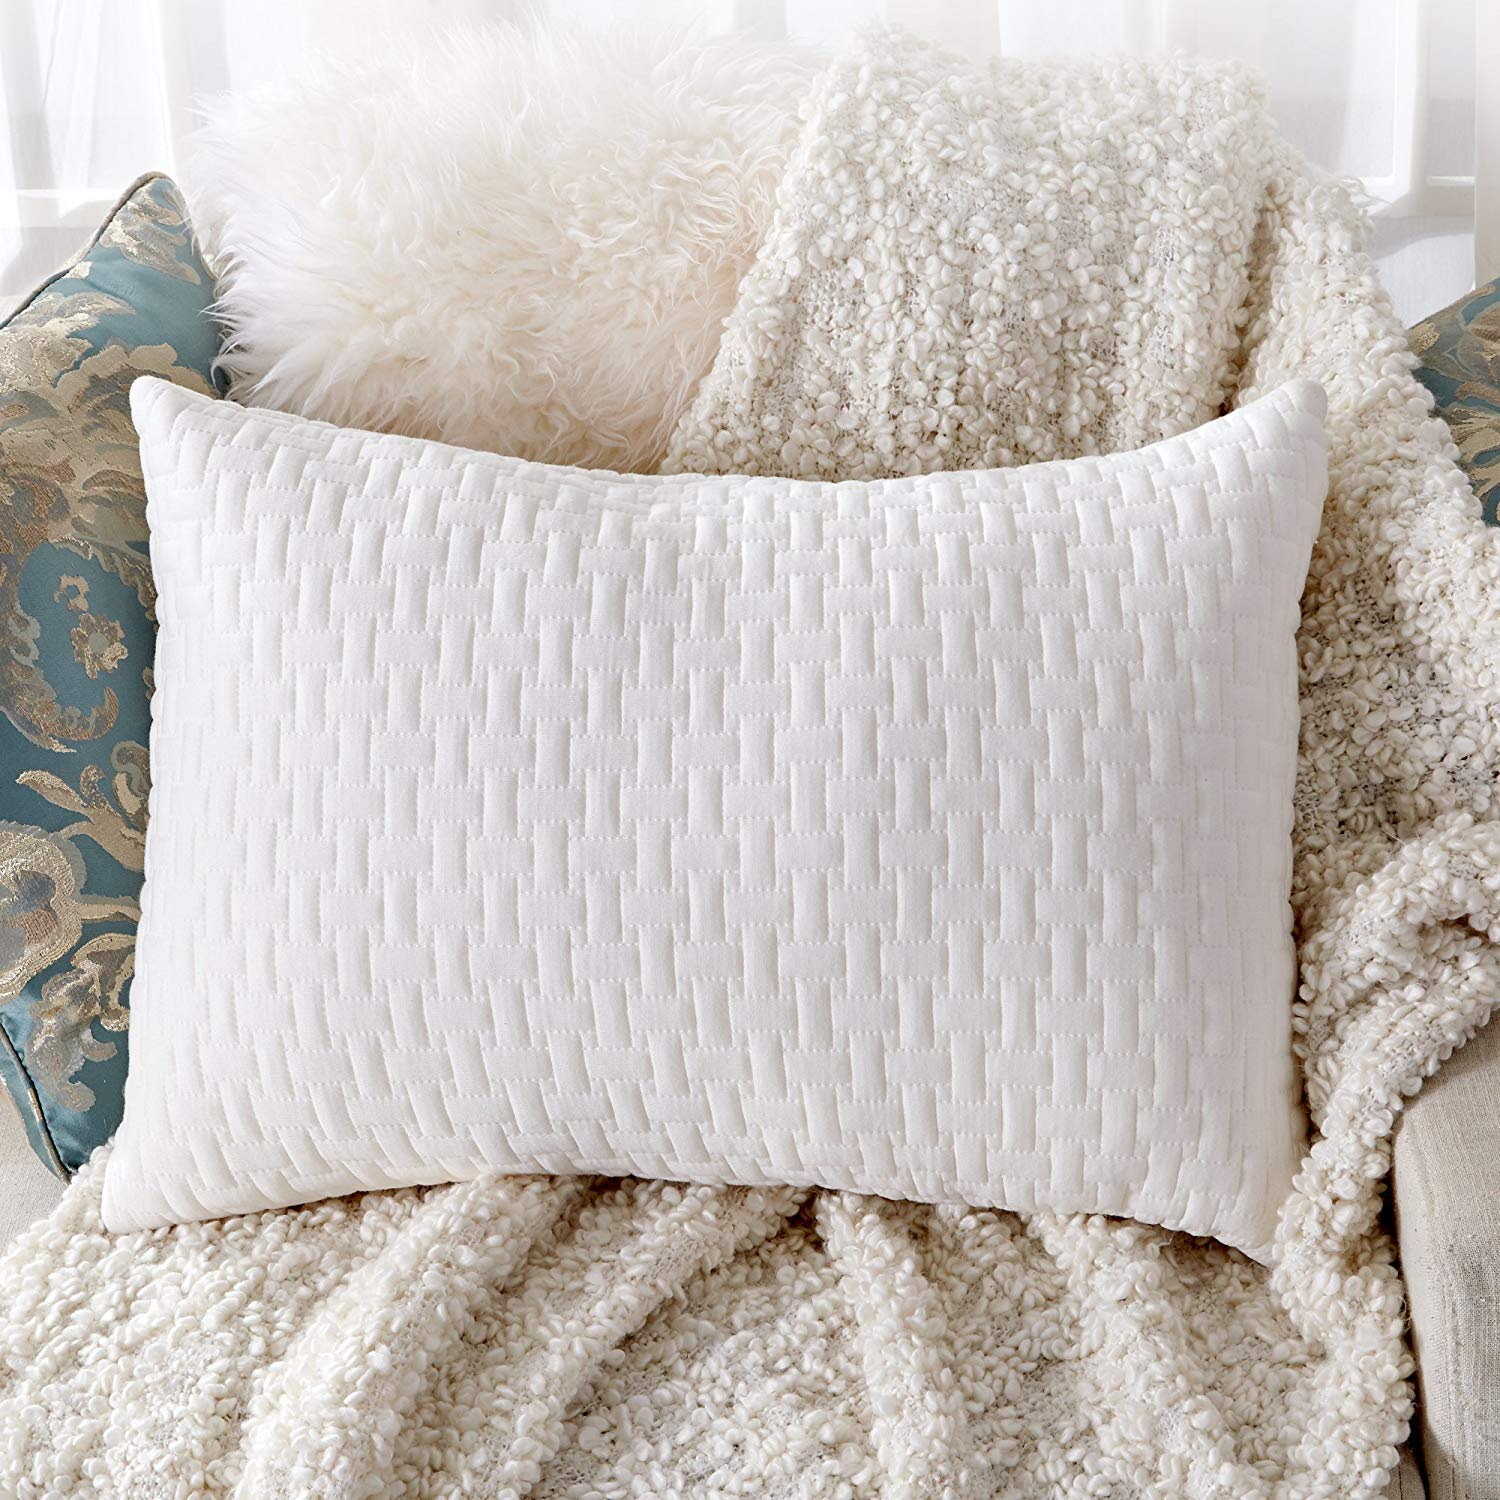 Sable Bed Pillow for Side Sleeper